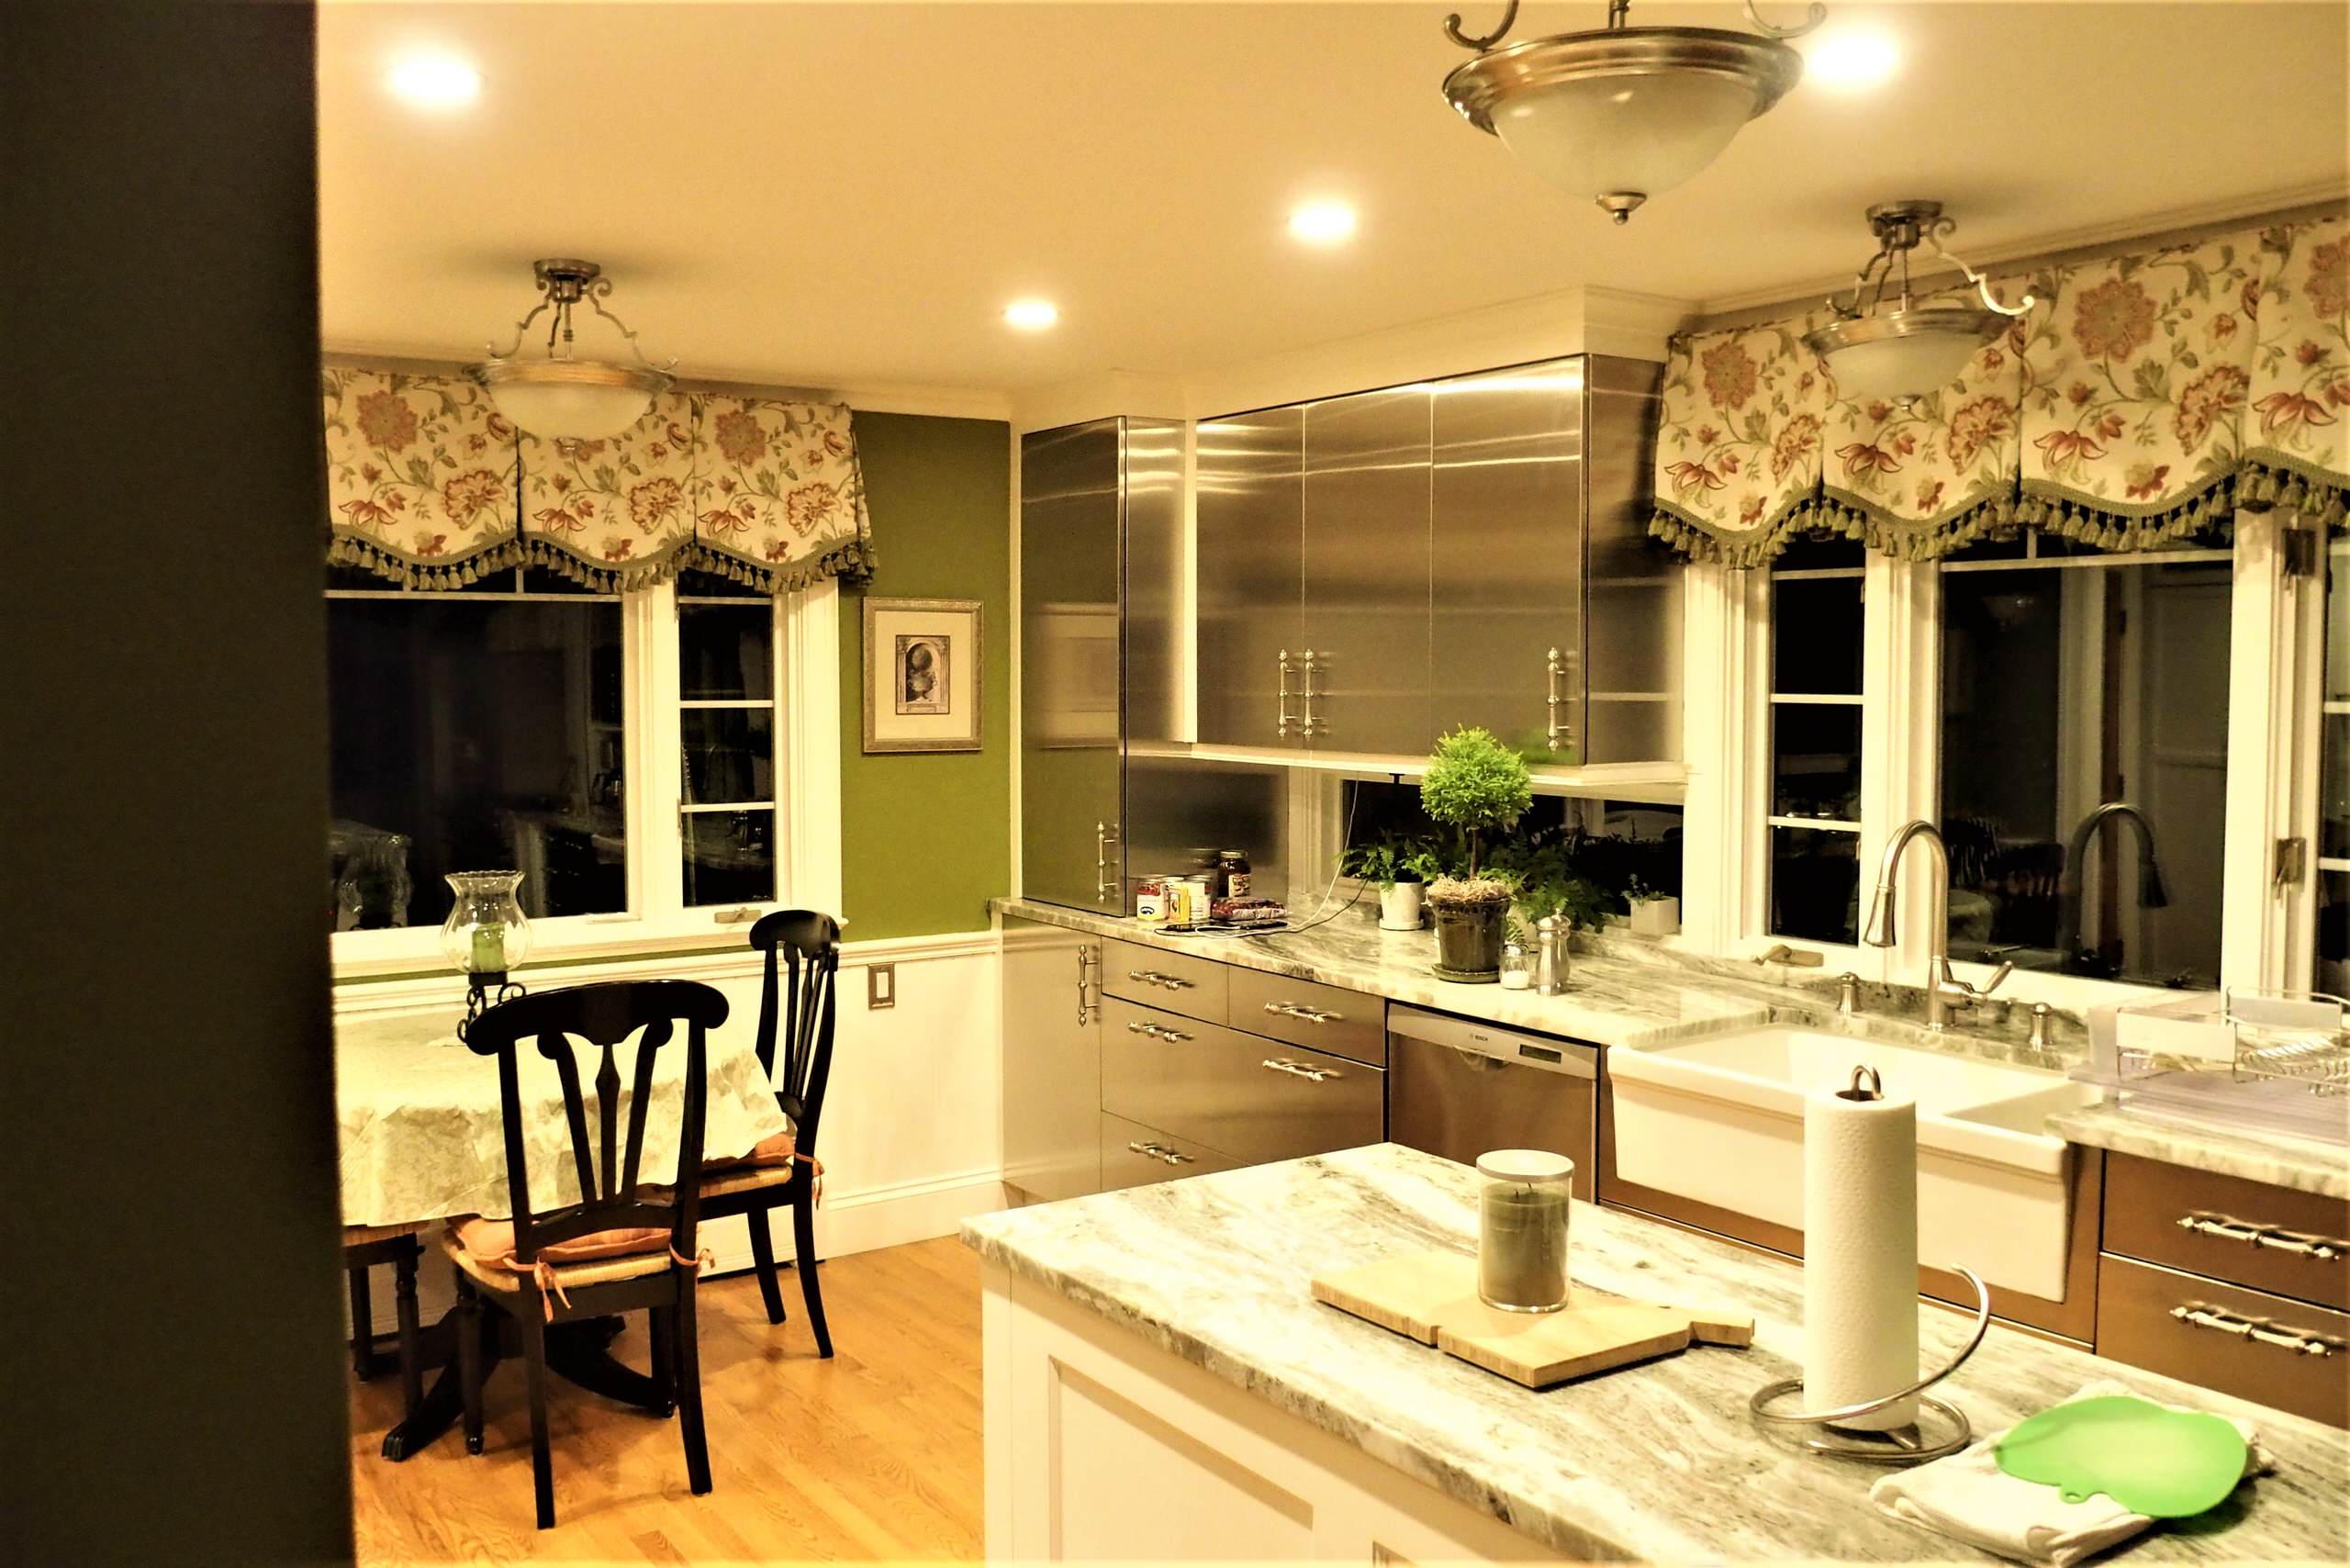 Box pleat valances with a shaped hem and tassel trim in a green kitchen